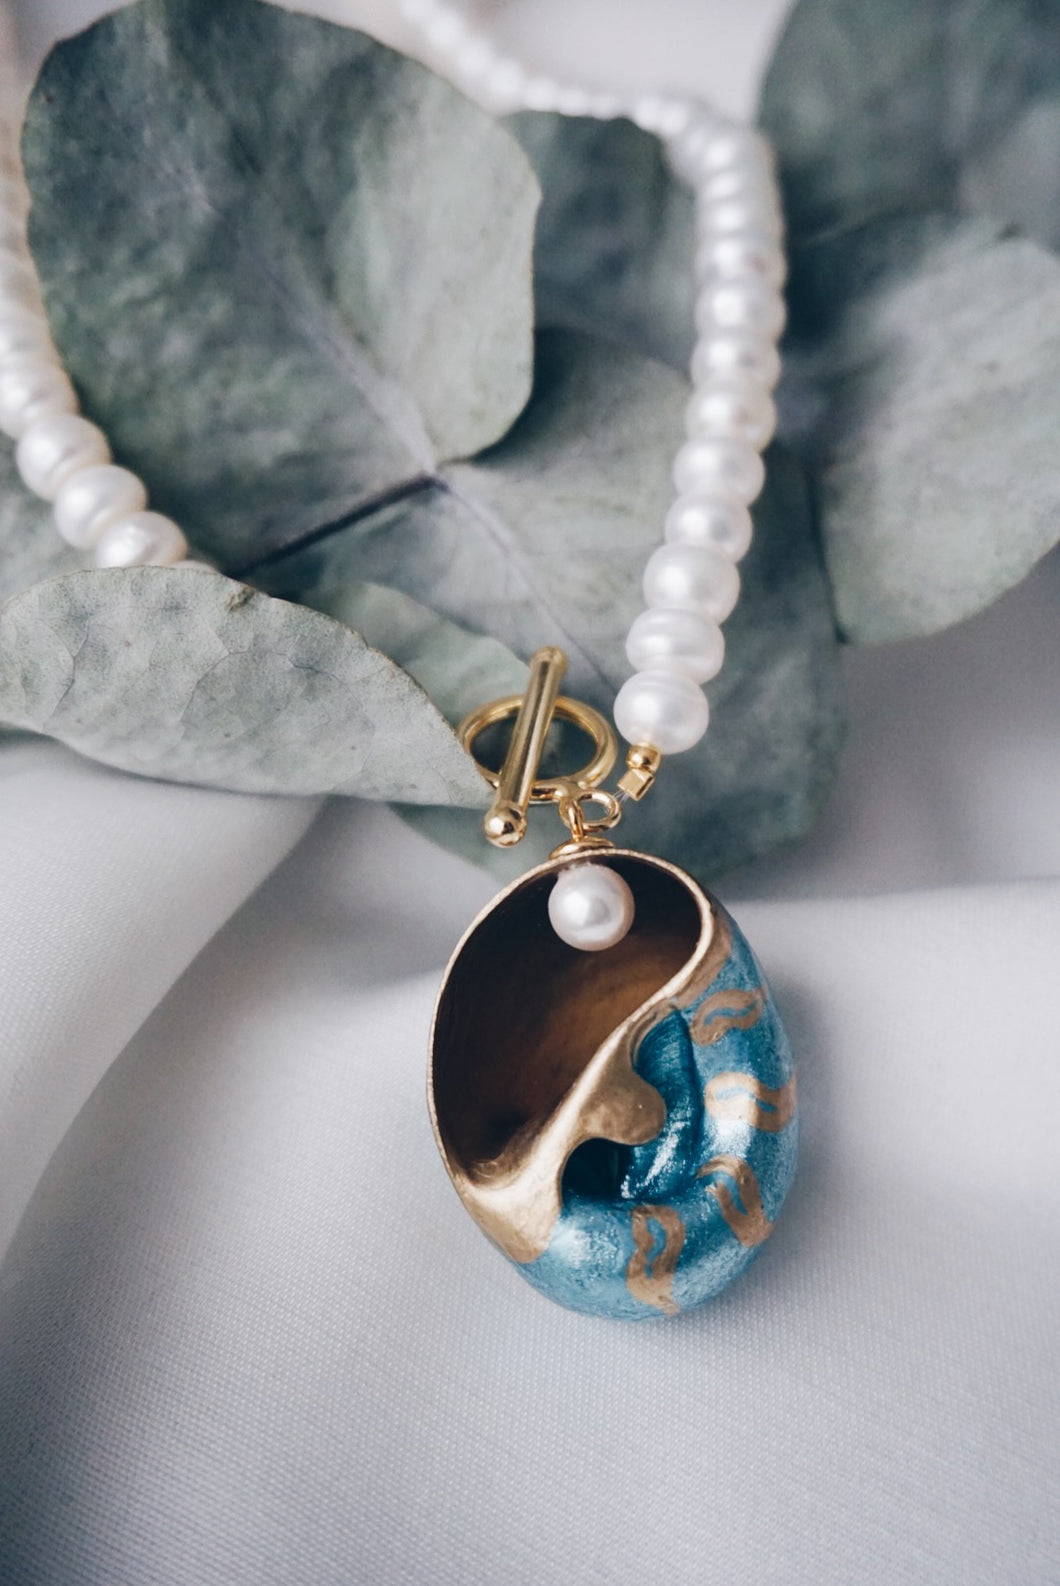 Emily sea snail necklace